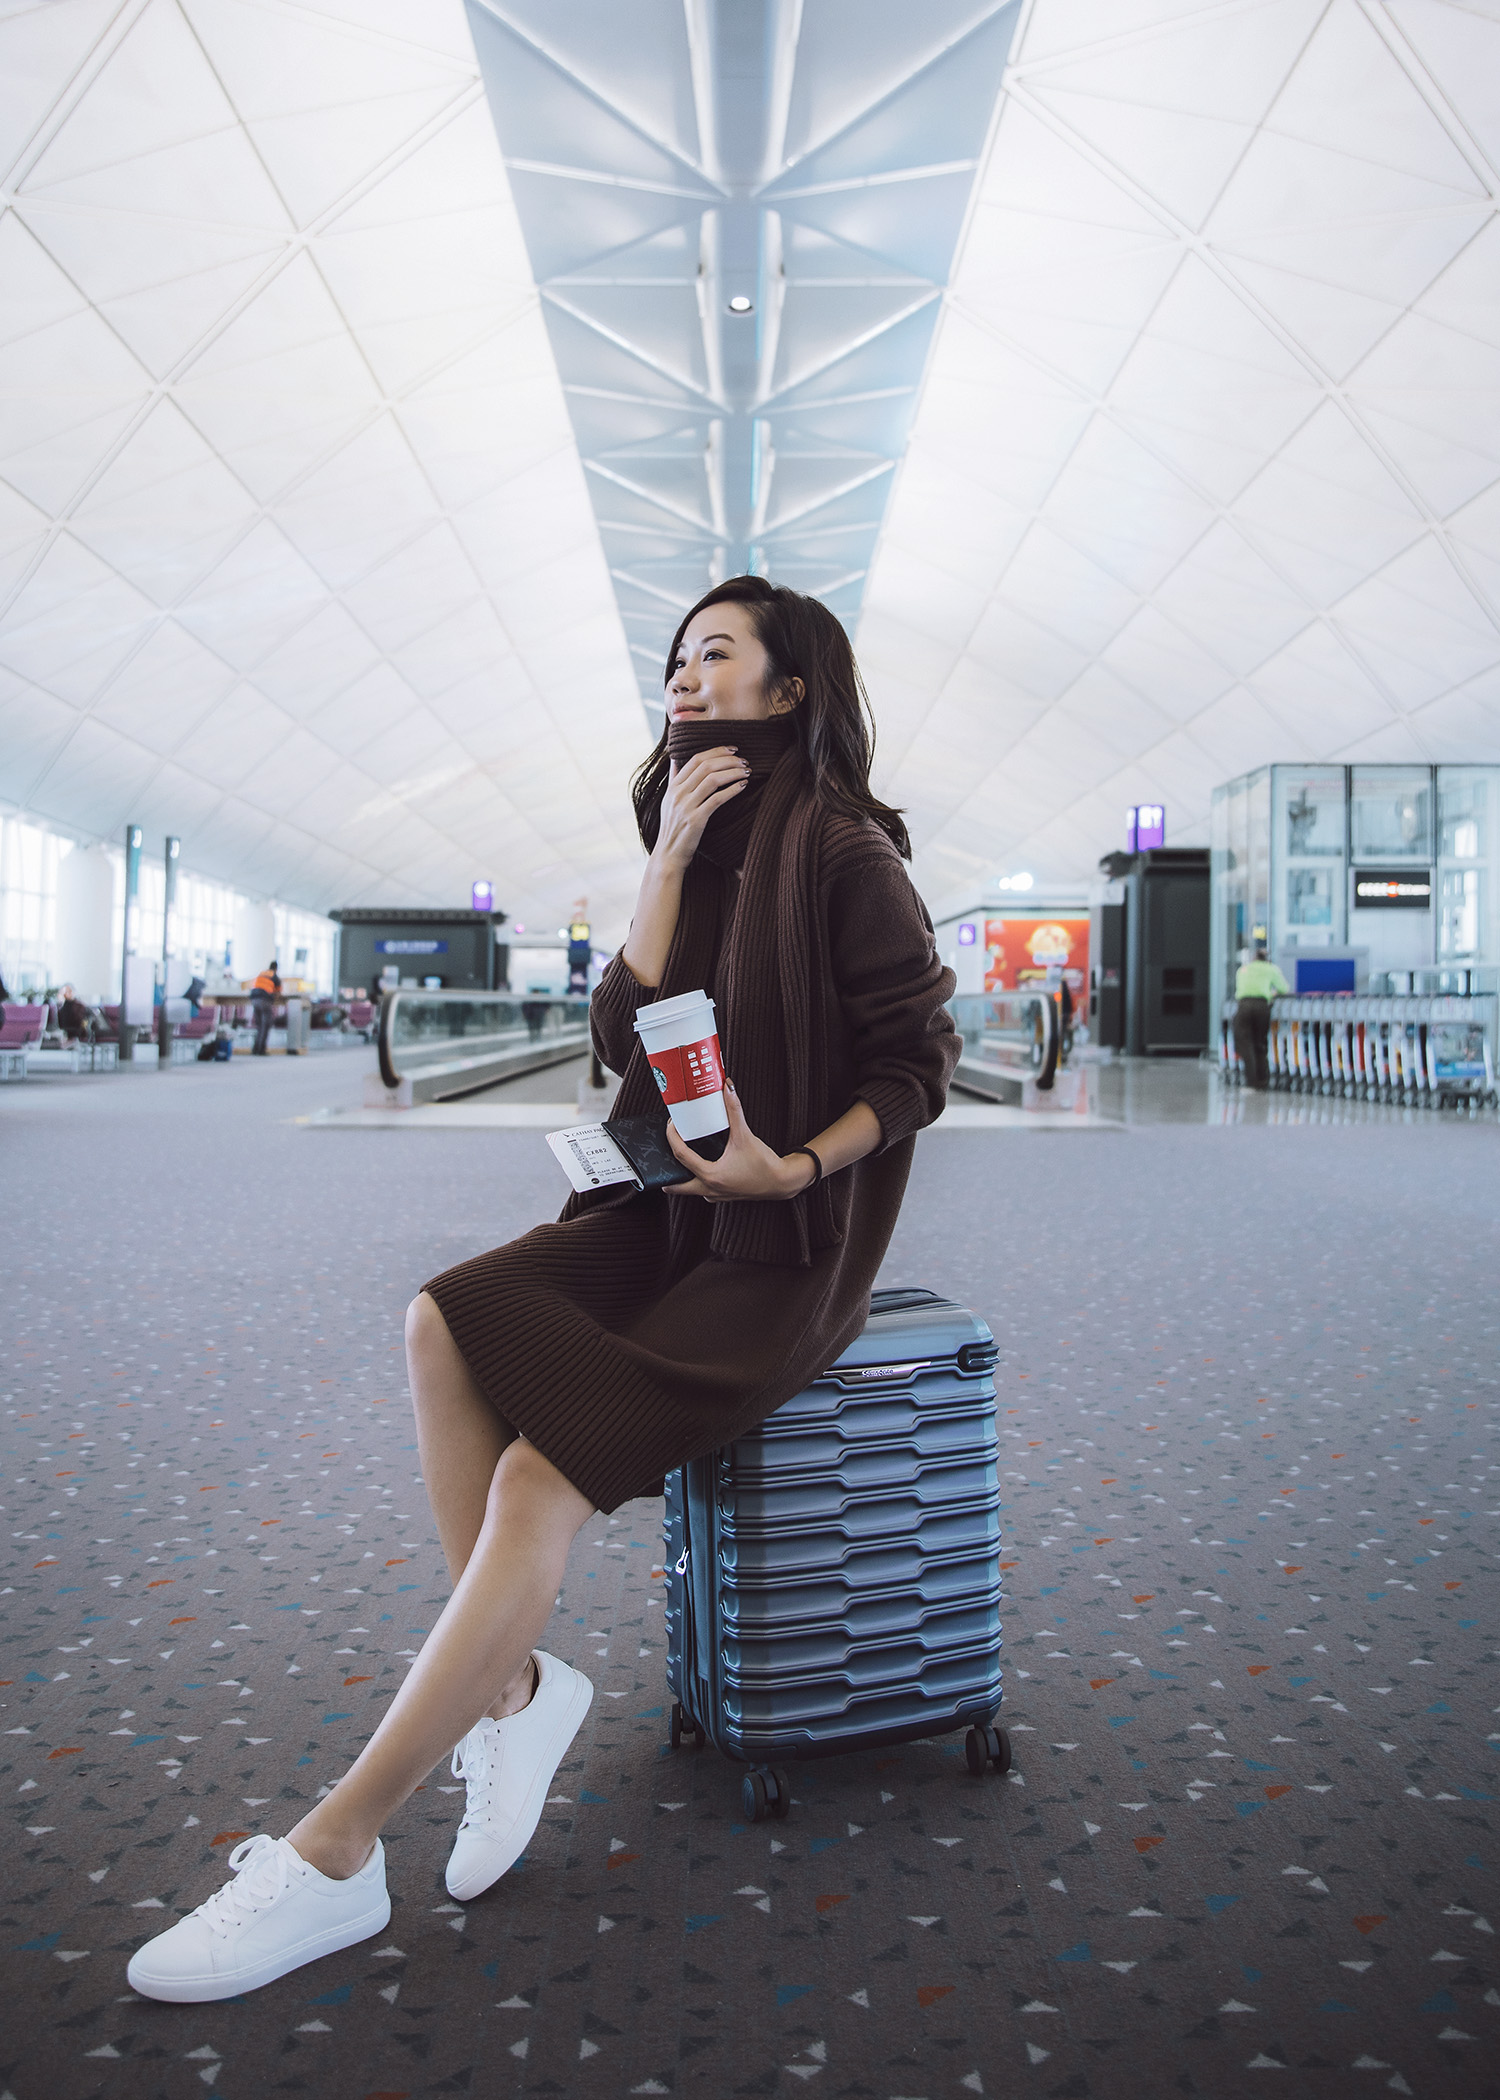 Hong Kong International Airport HKG Jenny Tsang of Tsangtastic in Hong Kong must see instagram spots must visit attractions